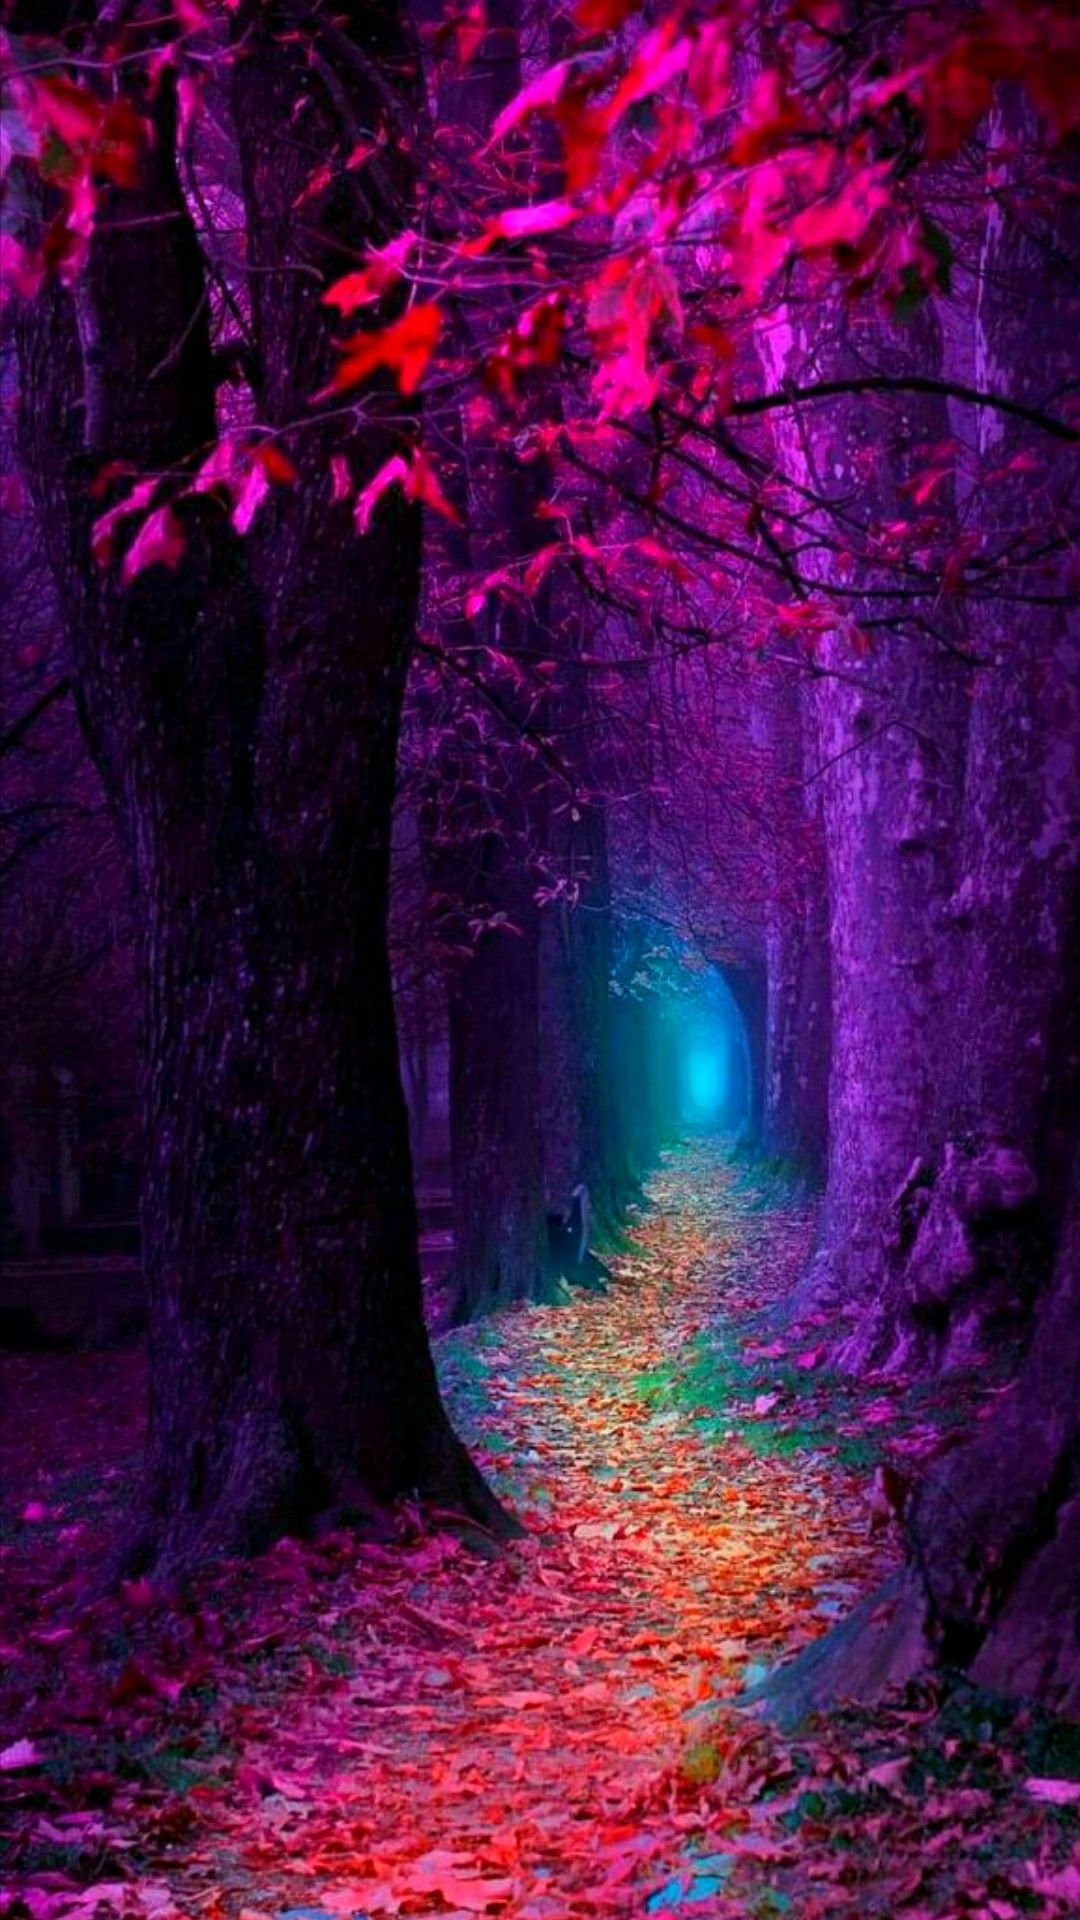 This magical forest Is beyond belief So many colors I see